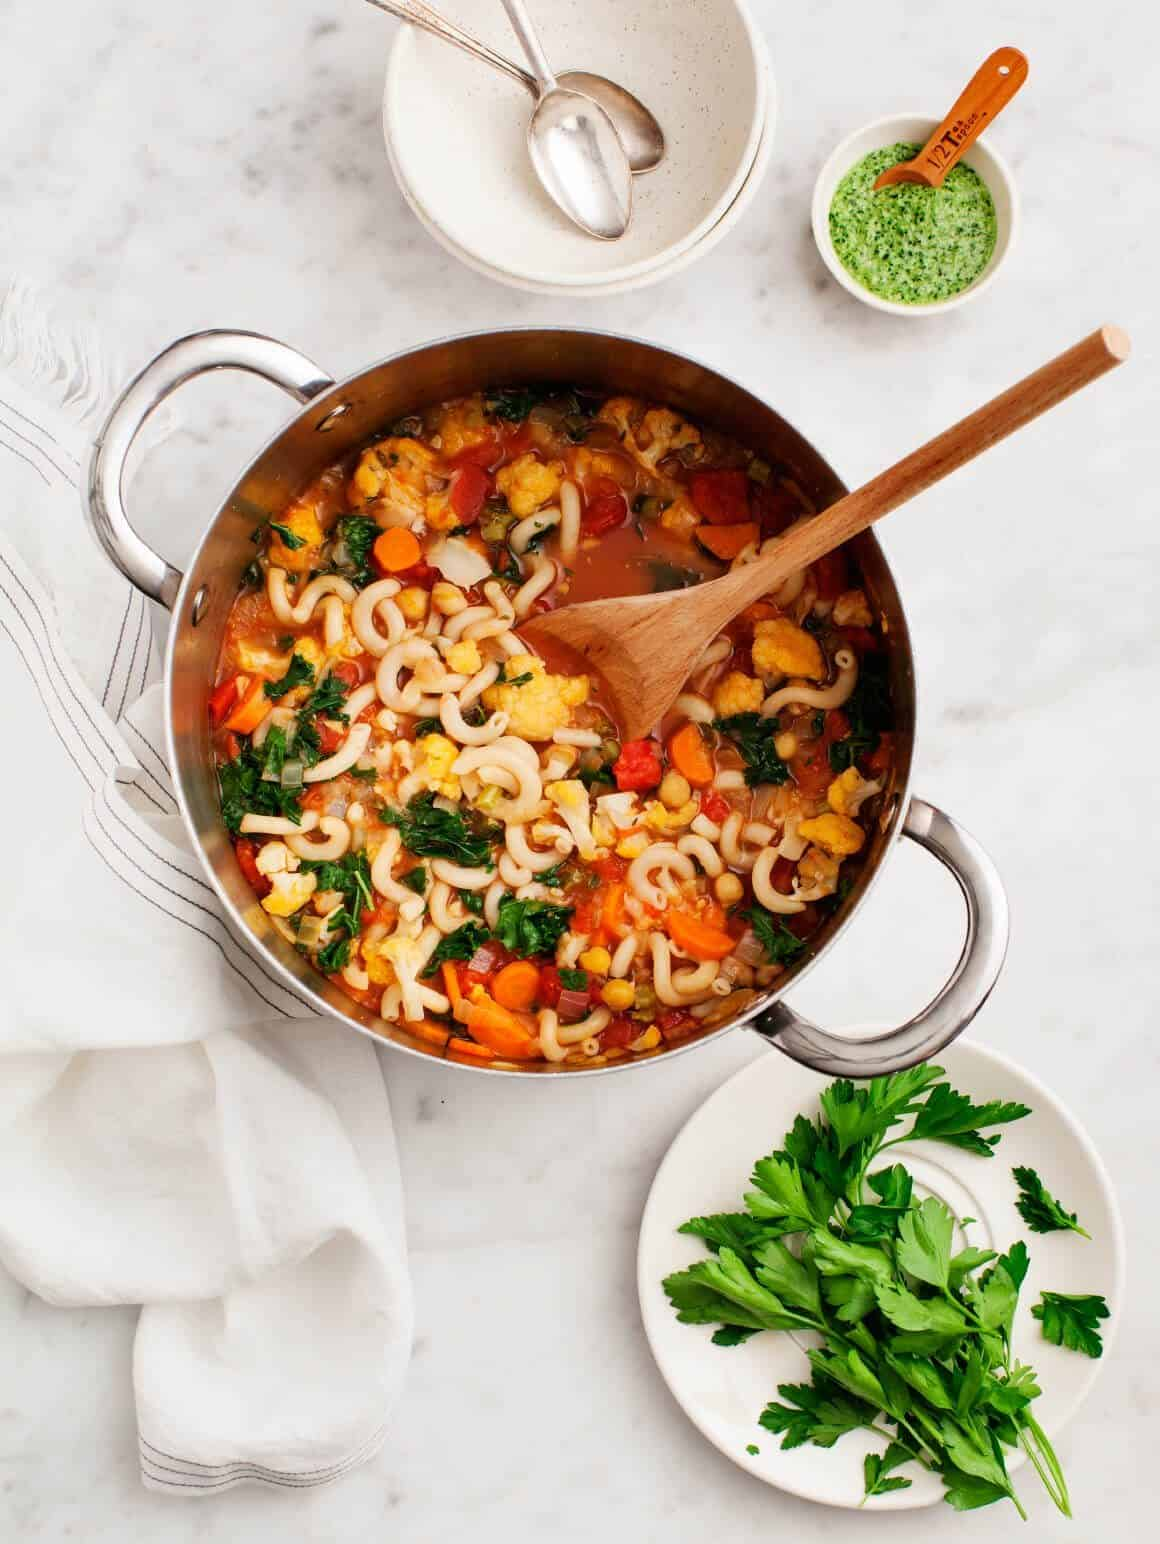 Cauliflower Minestrone with Kale Pesto (vegan, gluten free)